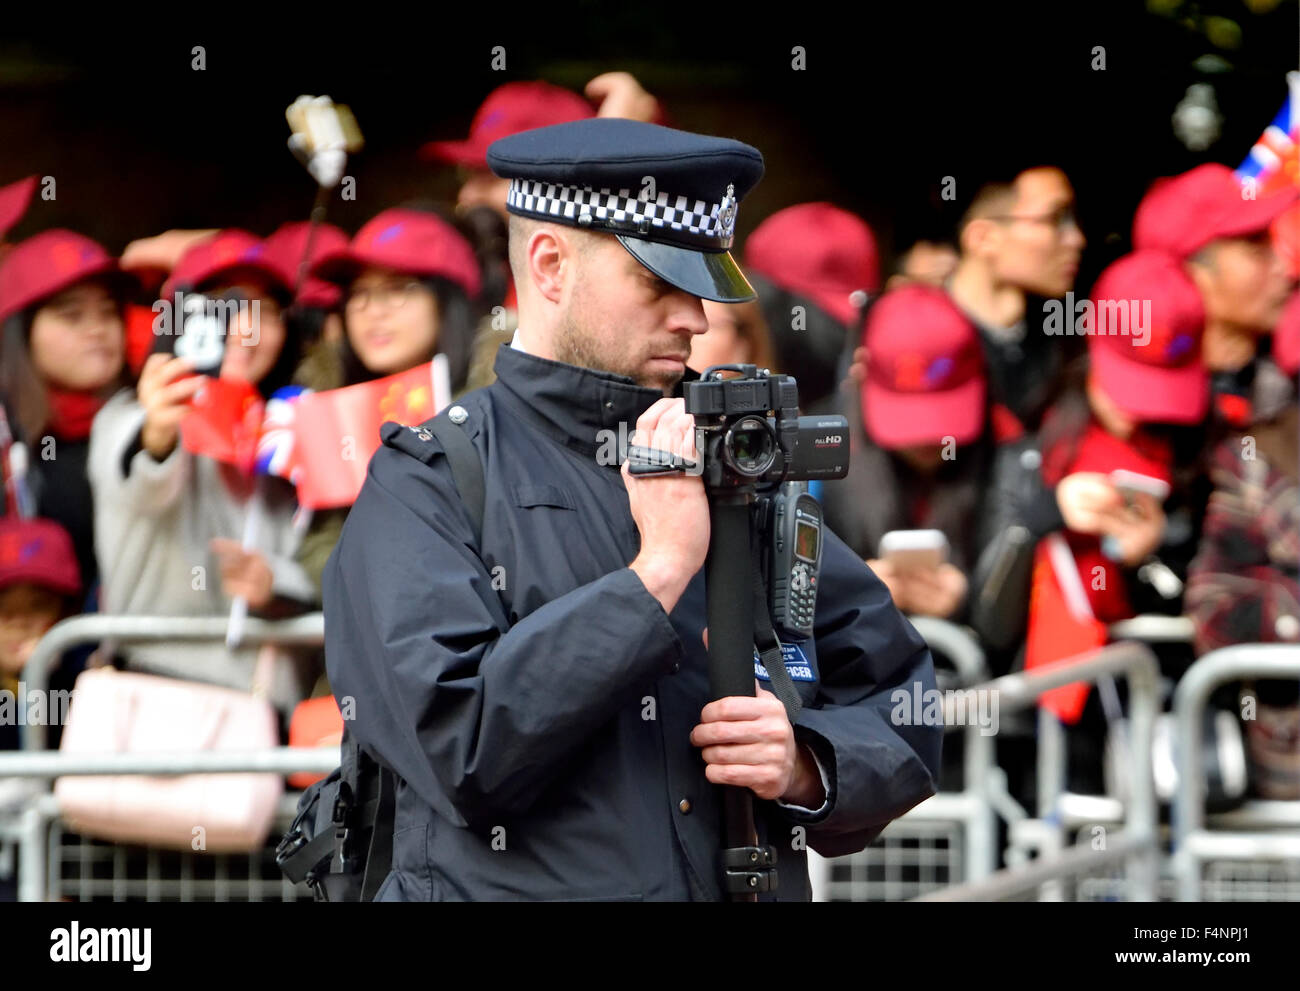 London Police Surveillance Stock Photos Headquarters 7744 2015 Officer Filming The Crowds And Protesters During Chinese President Xi Jinpings Visit